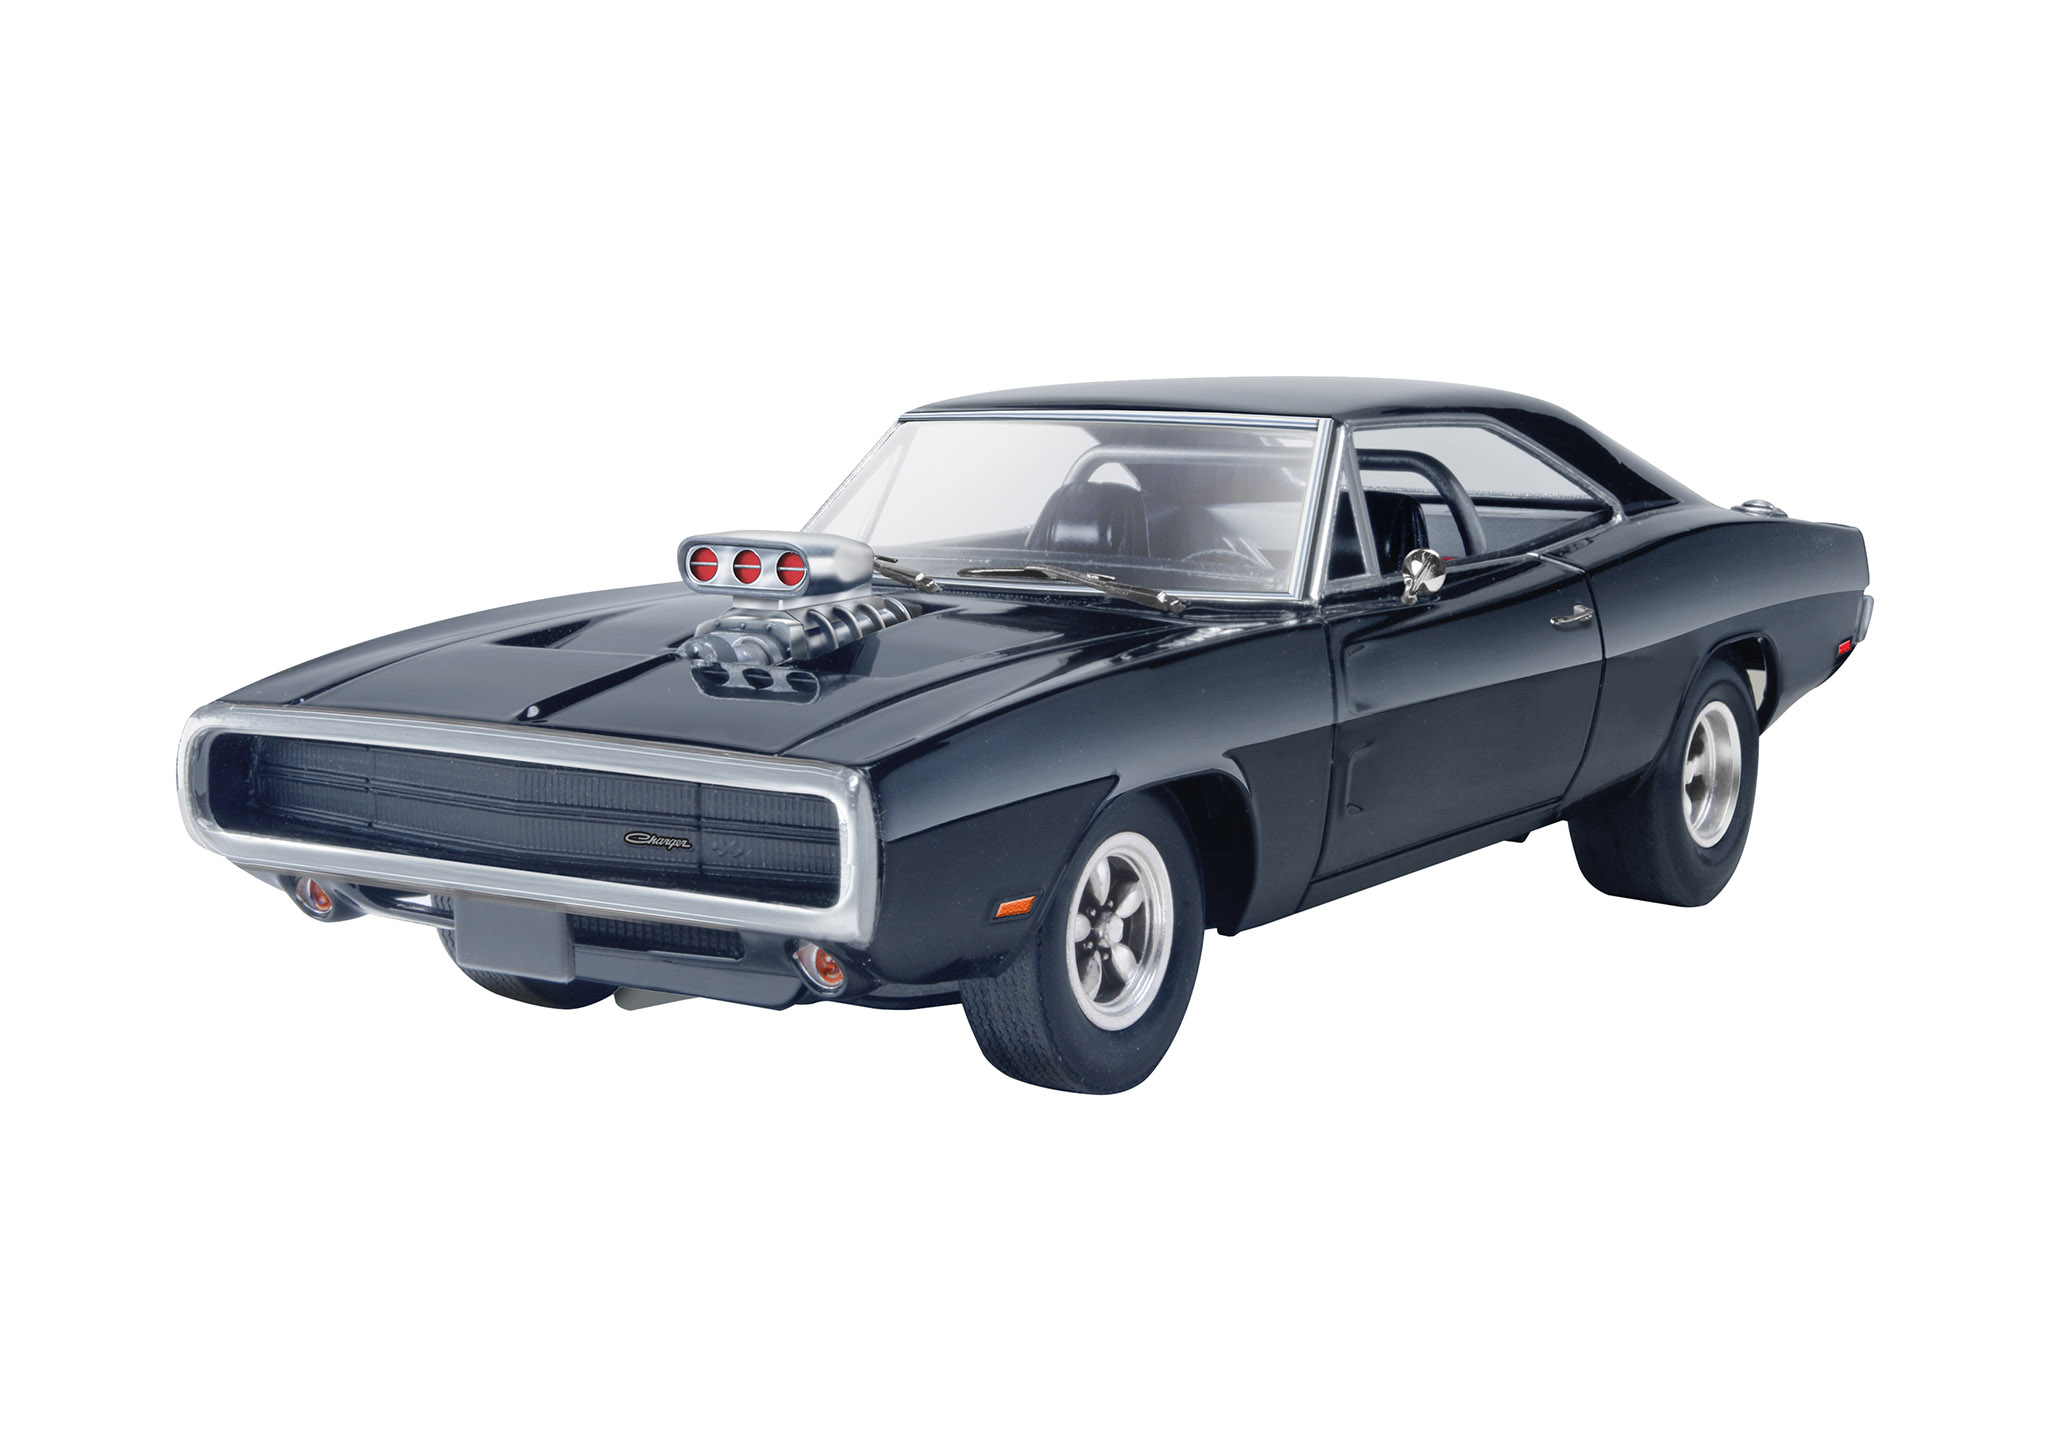 Revell Fast and Furious- Dominic's '70 Dodge Charger